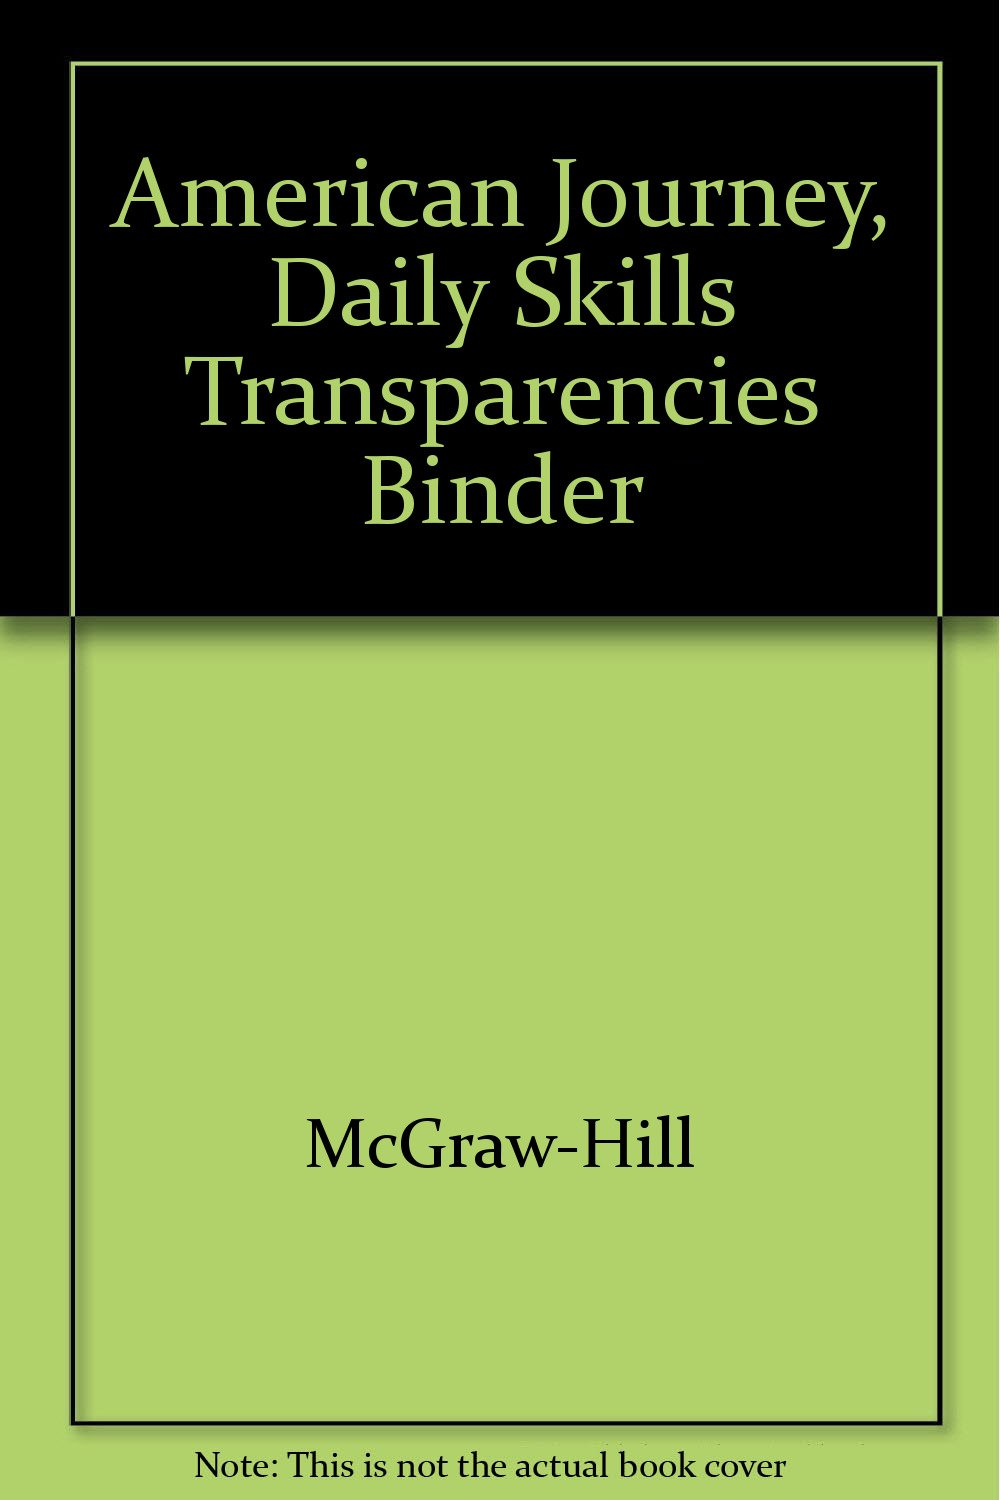 American Journey, Daily Skills Transparencies Binder PDF